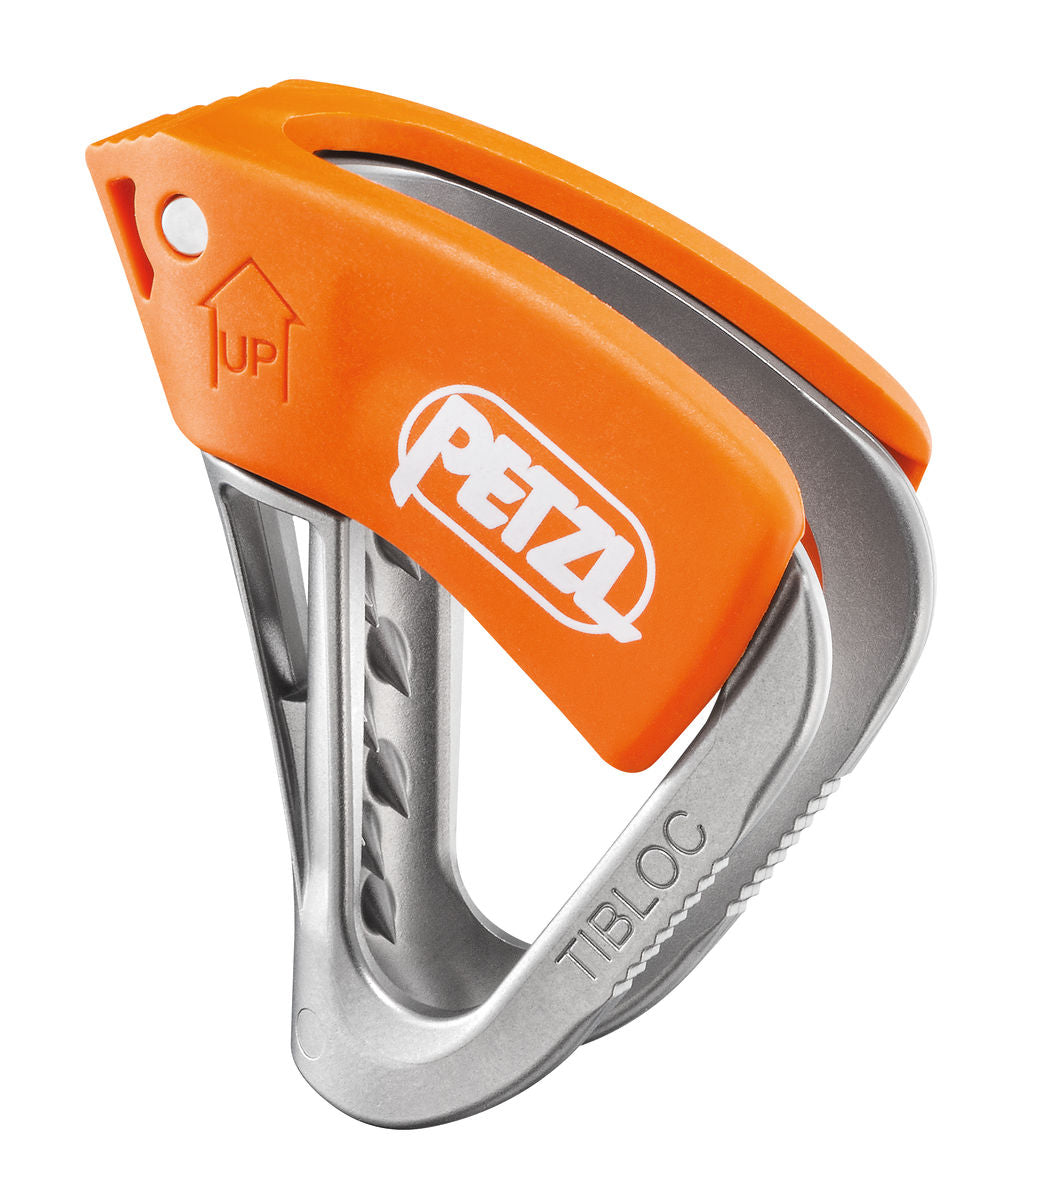 Petzl Tibloc ascender, in orange and silver colours